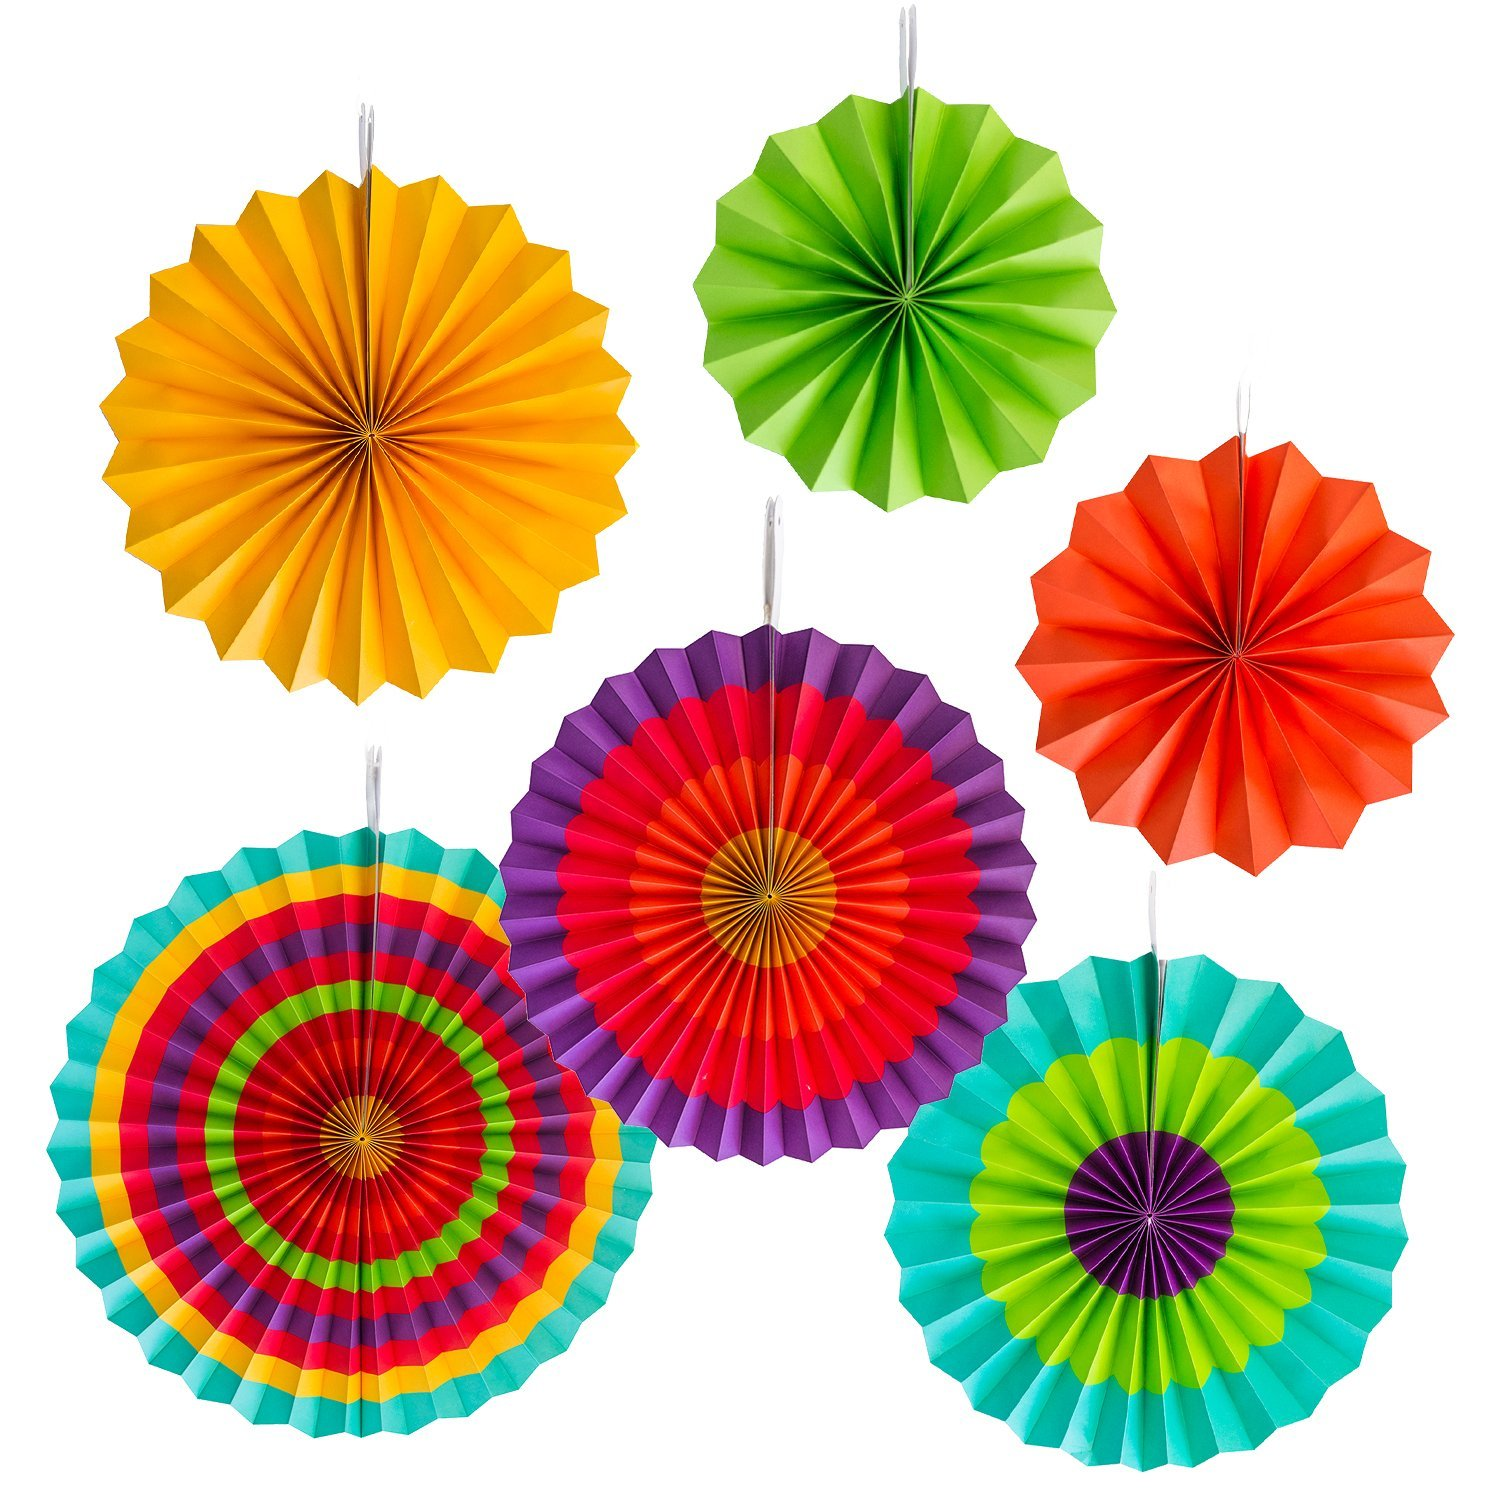 Amazon.com: Fiesta Colorful Paper Fans Round Wheel Disc Southwestern ...